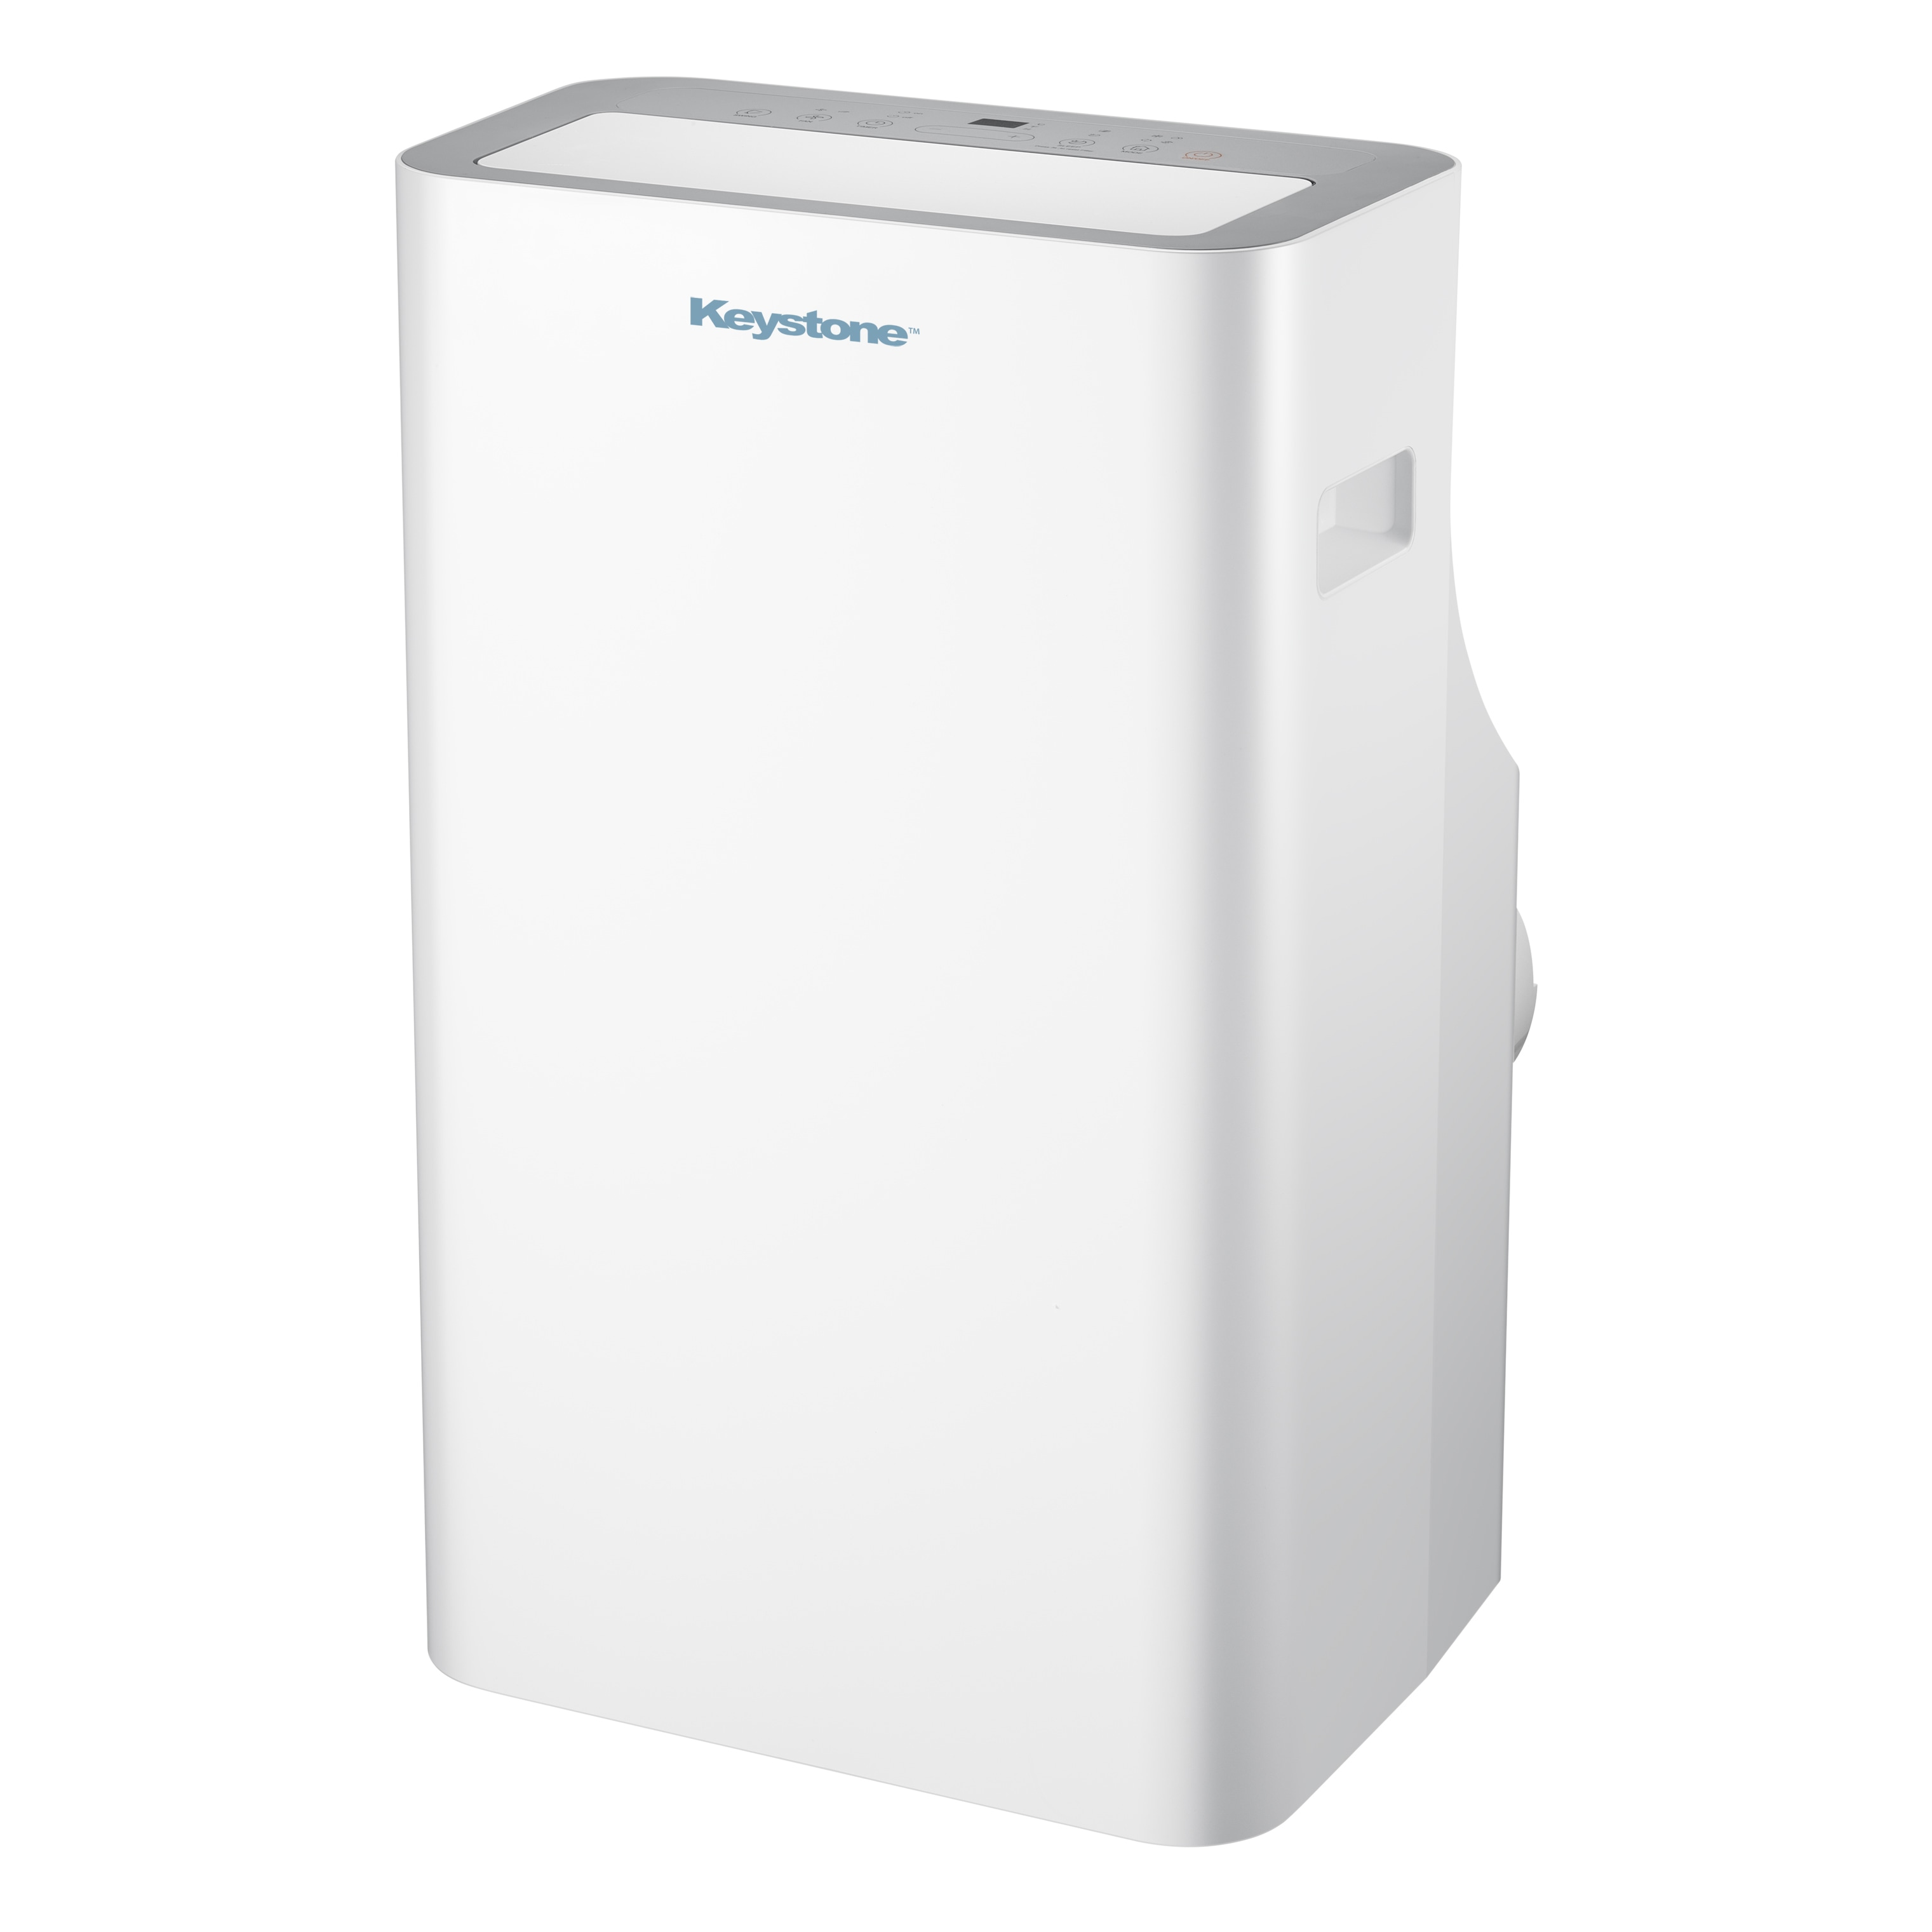 KEYSTONE LEARNING 12,000 BTU 115V Extra-Quiet Portable Ai...